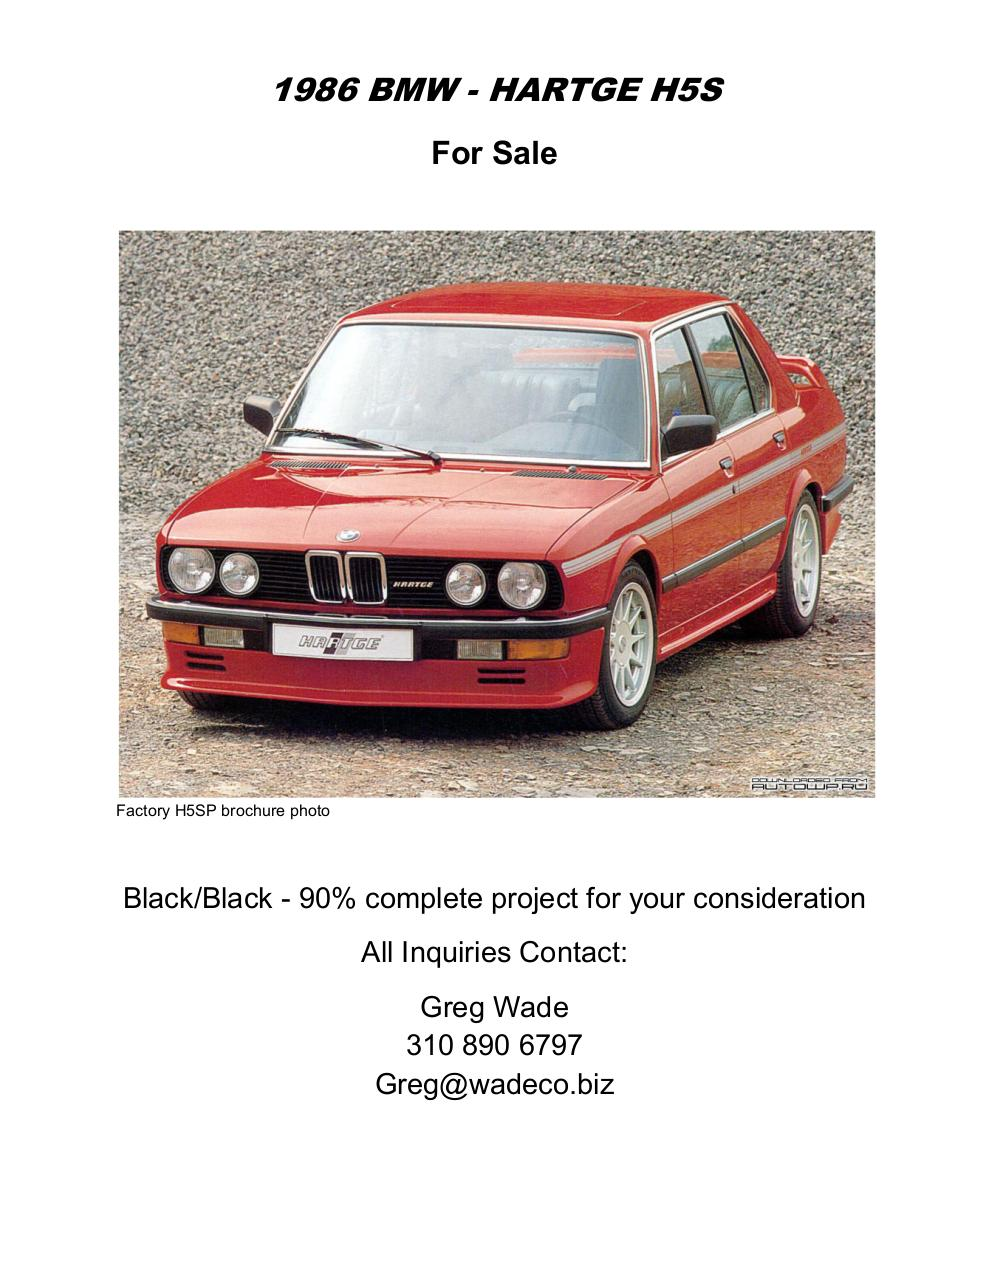 1986 BMW Hartge H5S - For Sale.pdf - page 1/45